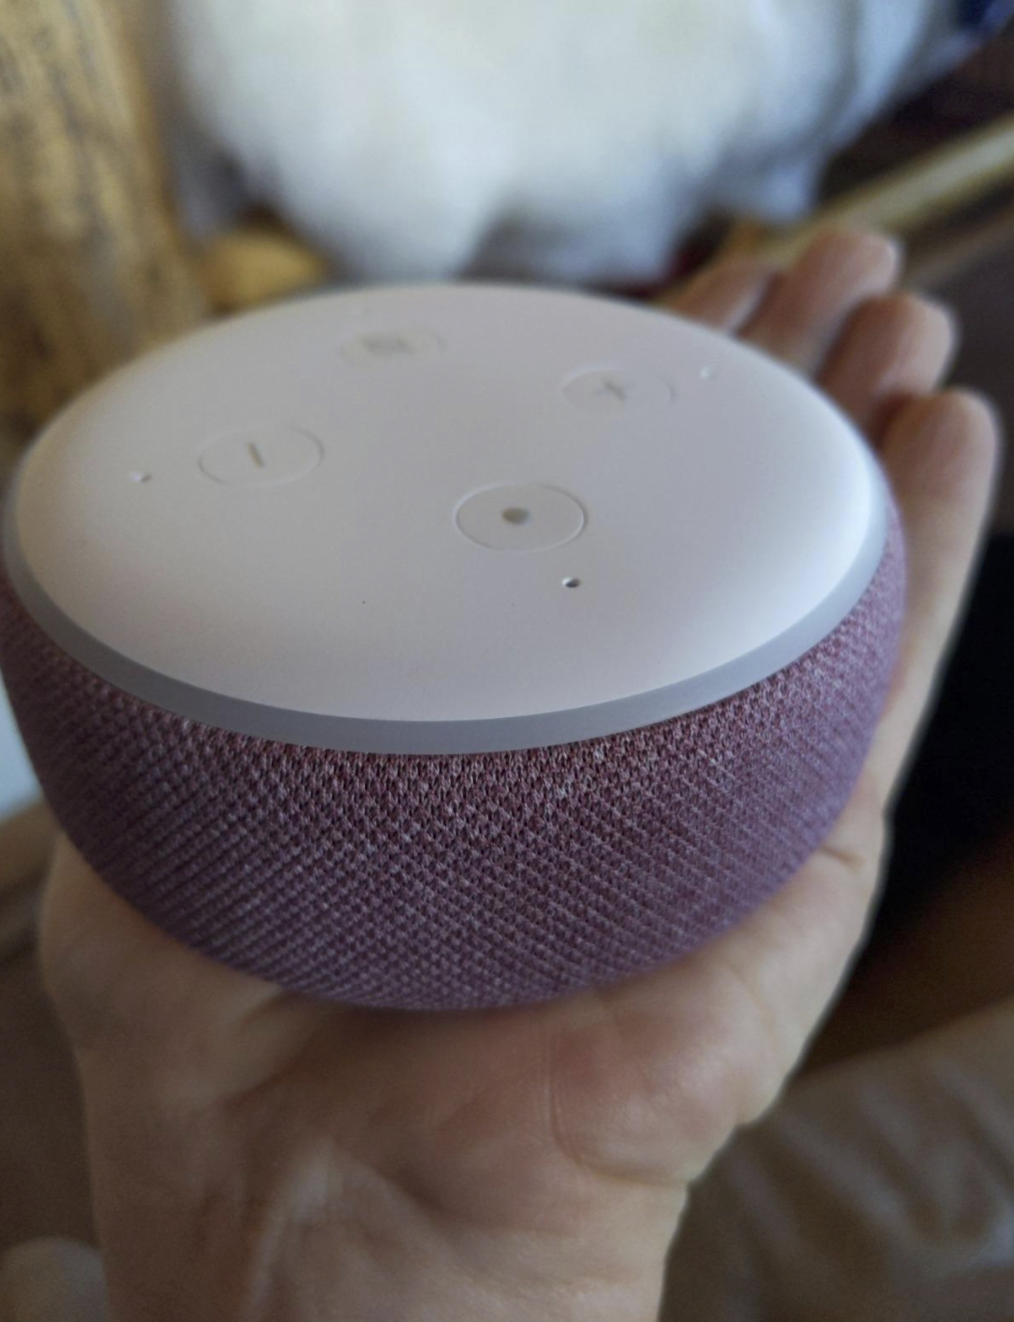 reviewer's hand holding the Echo Dot which is circular and a pink color